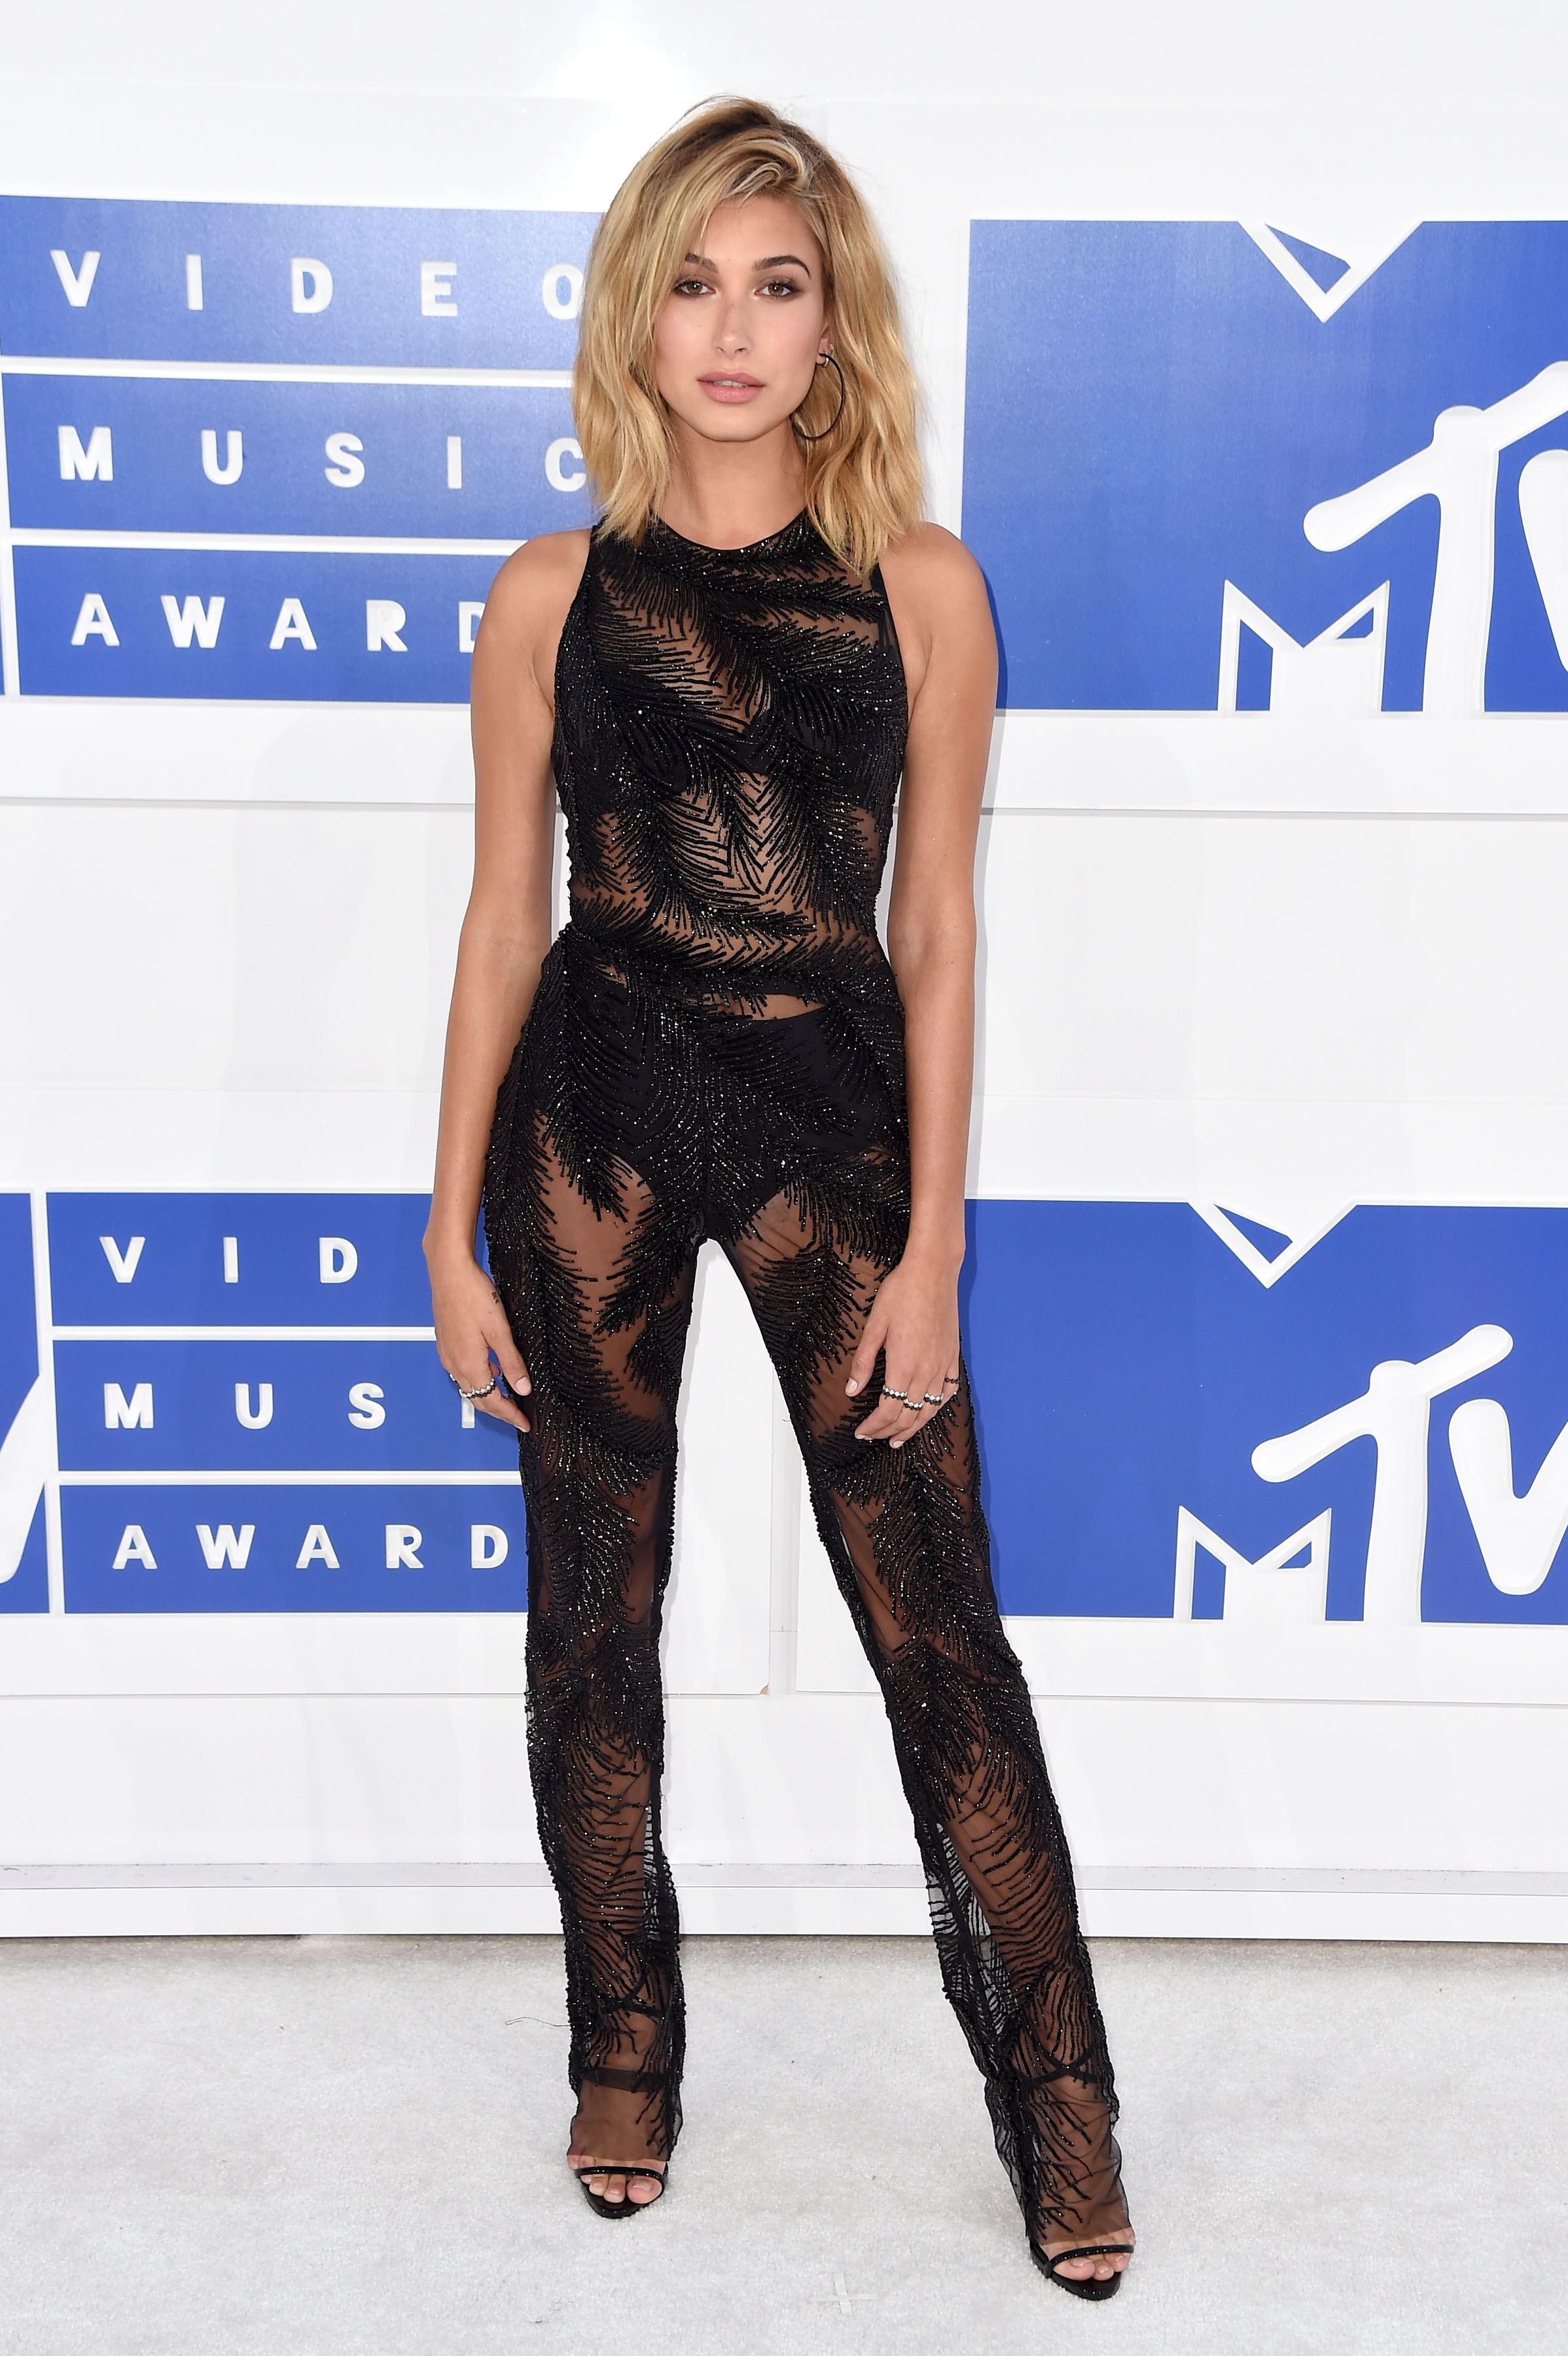 Hailey Baldwin attends the 2016 MTV Video Music Awards at Madison Square Garden on Aug. 28, 2016 in New York City.